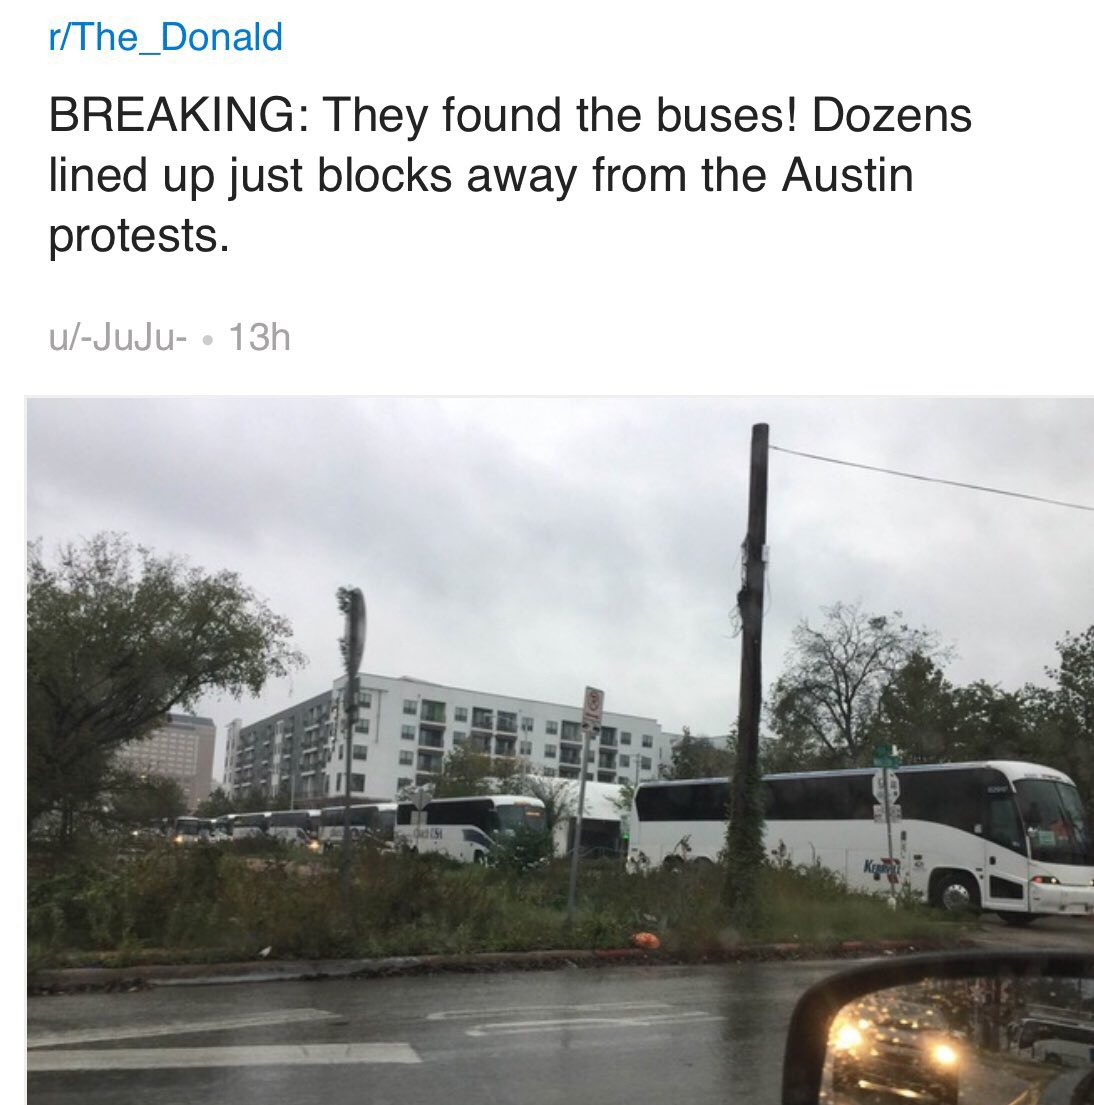 donald-trump-protests-2-buses-in-austin